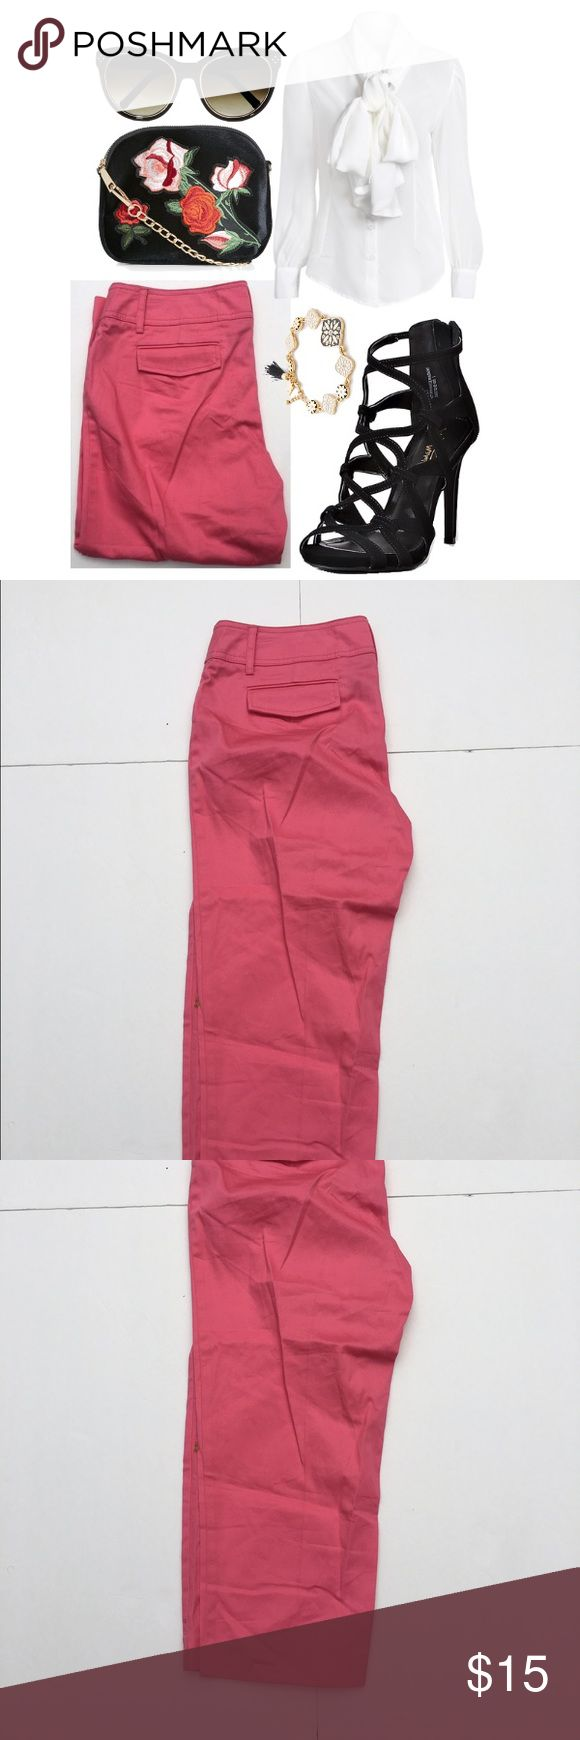 🆕Coral Capris Coral straight leg capris. In great condition. Great for the upcoming spring and summer. 97% cotton 3% spandex. ℹmake an offer or bundle for great pricesℹ new directions Pants